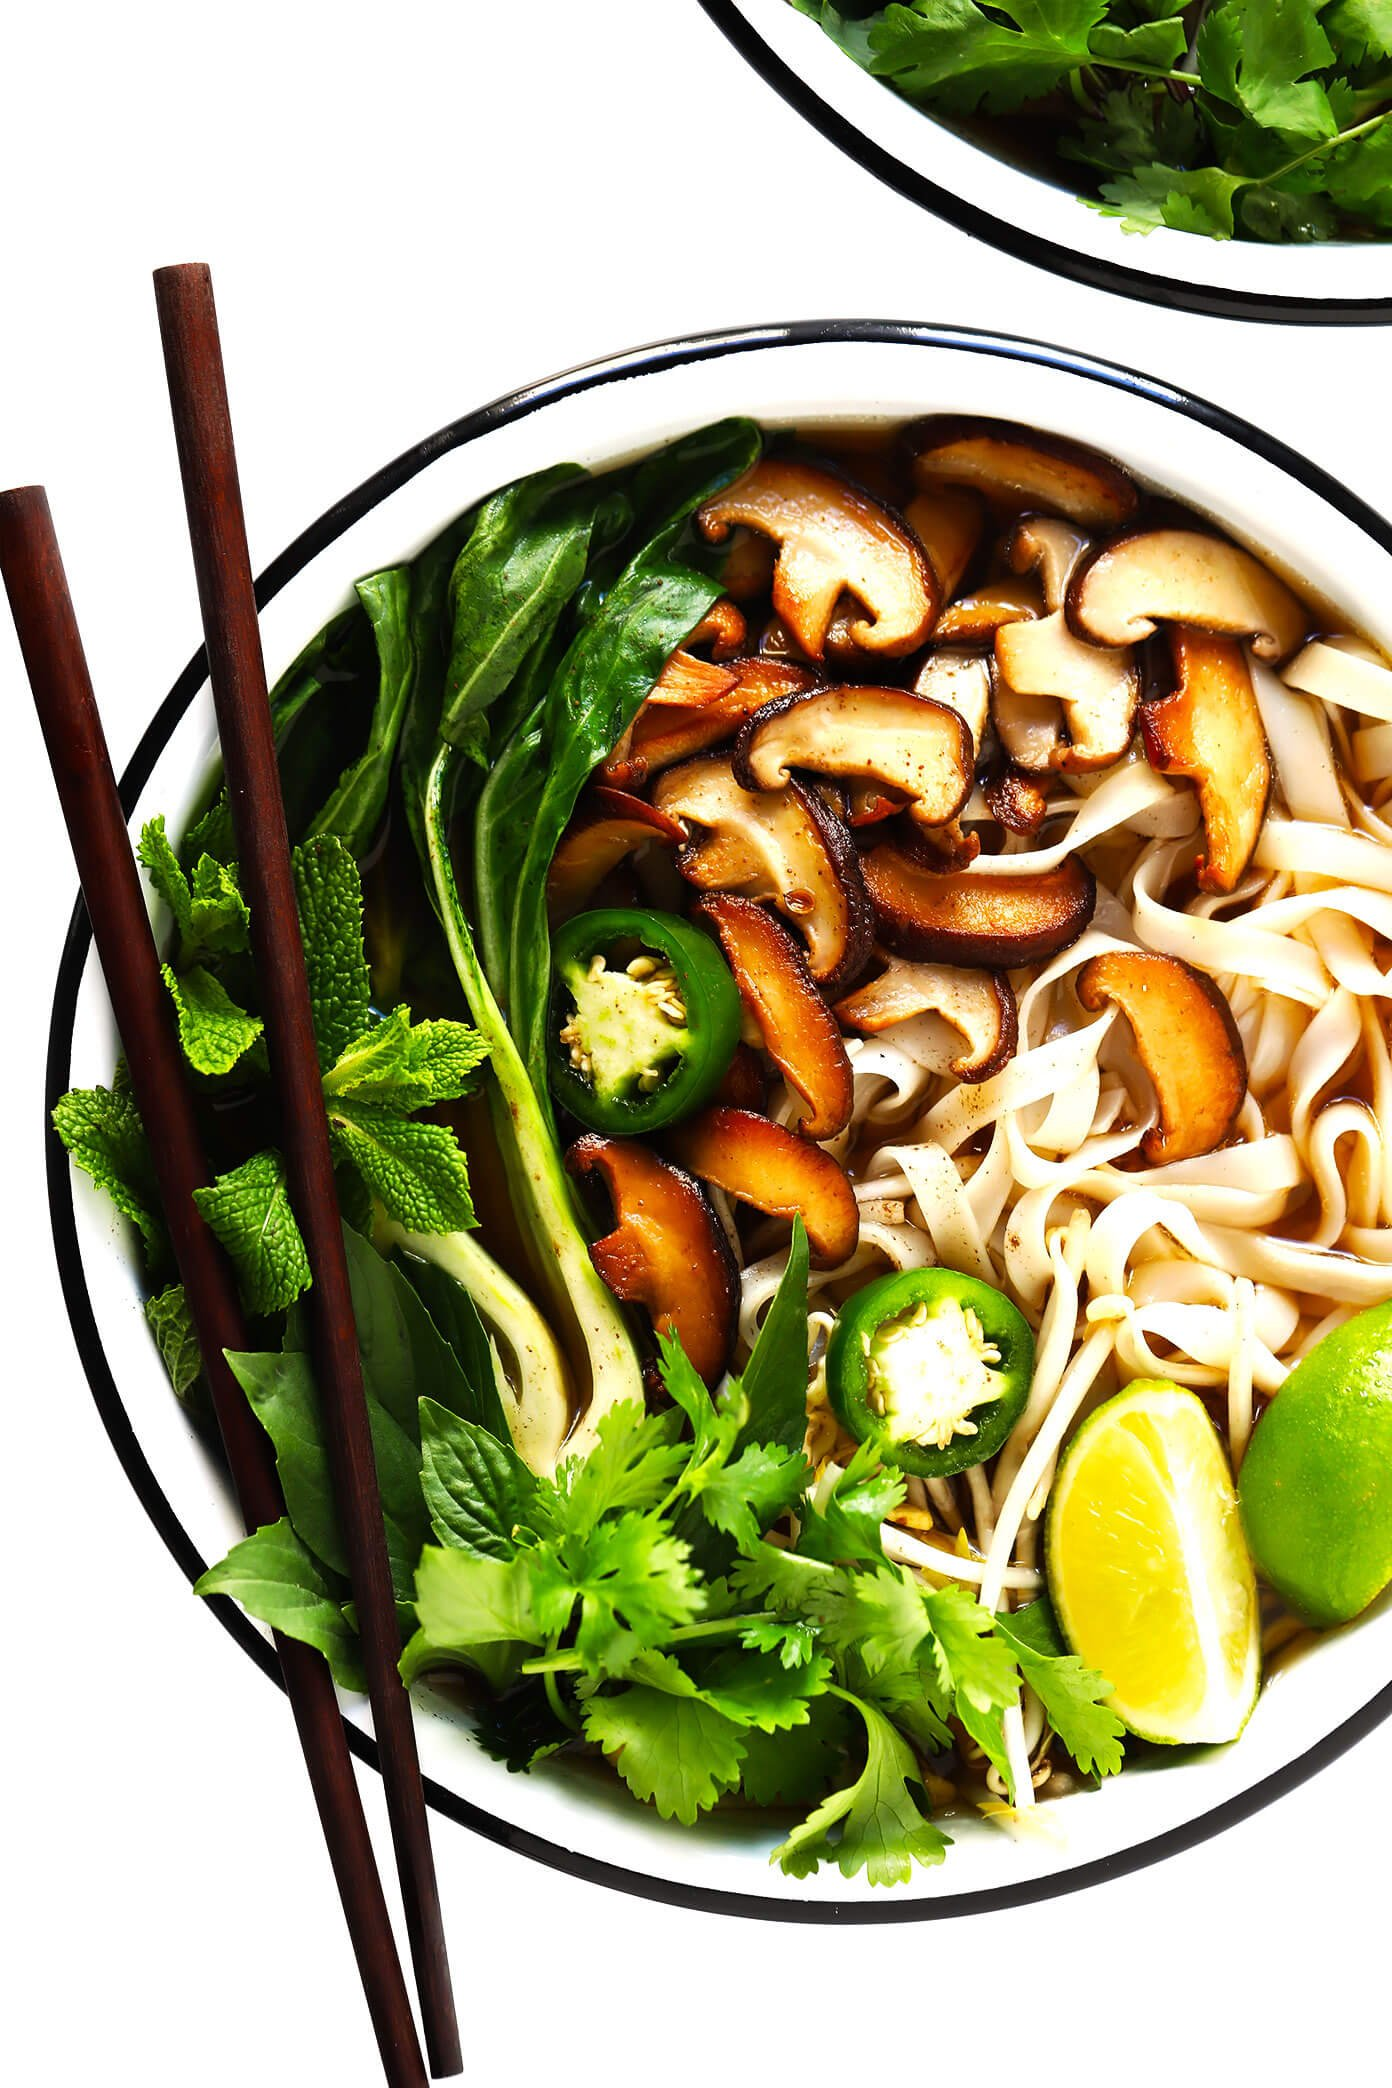 pho vegan recipe vegetarian soup easy noodle vietnamese oven noodles gimme some veggies gimmesomeoven recipes bowl tofu rice broth most